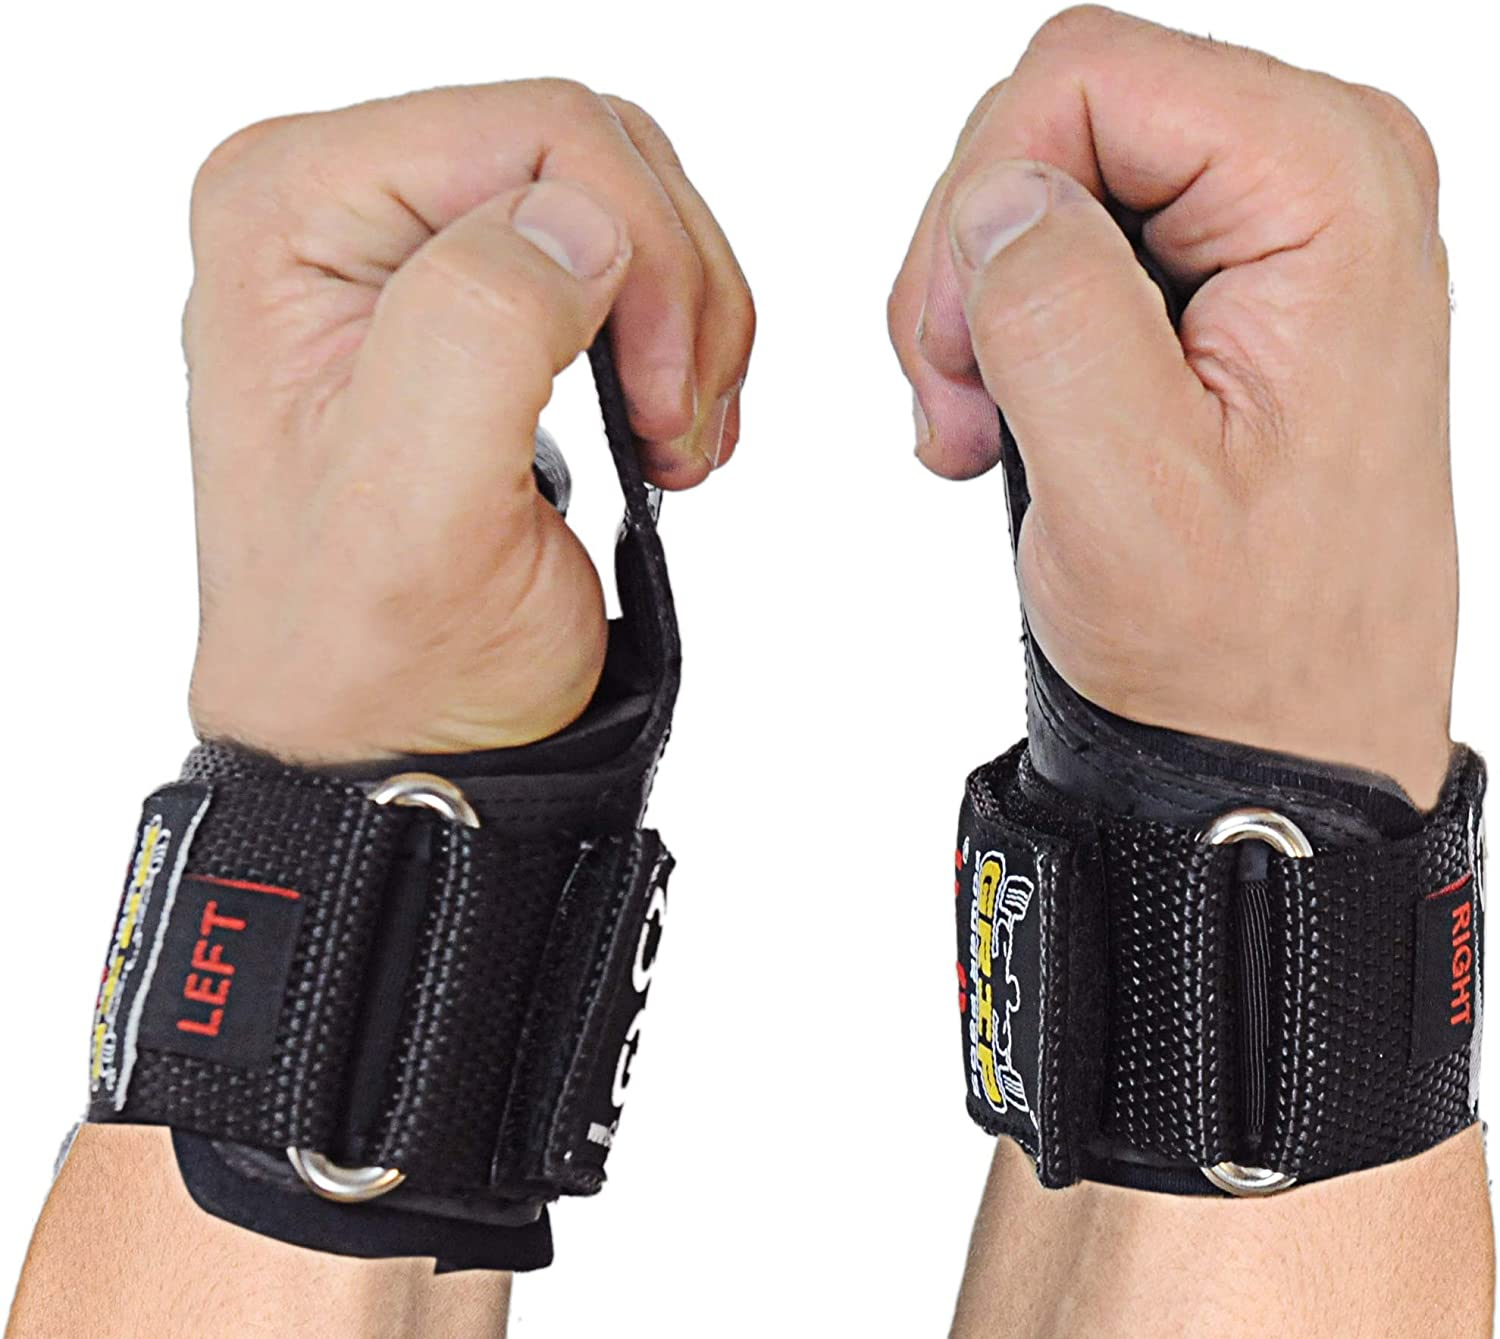 For Deadlifts With Built in Adjustable Neoprene Padded Wrist Wrap Support. Power Lifting Cobra Grips PRO Weight Lifting Gloves Alternative to Power Lifting Hooks Heavy Duty Straps